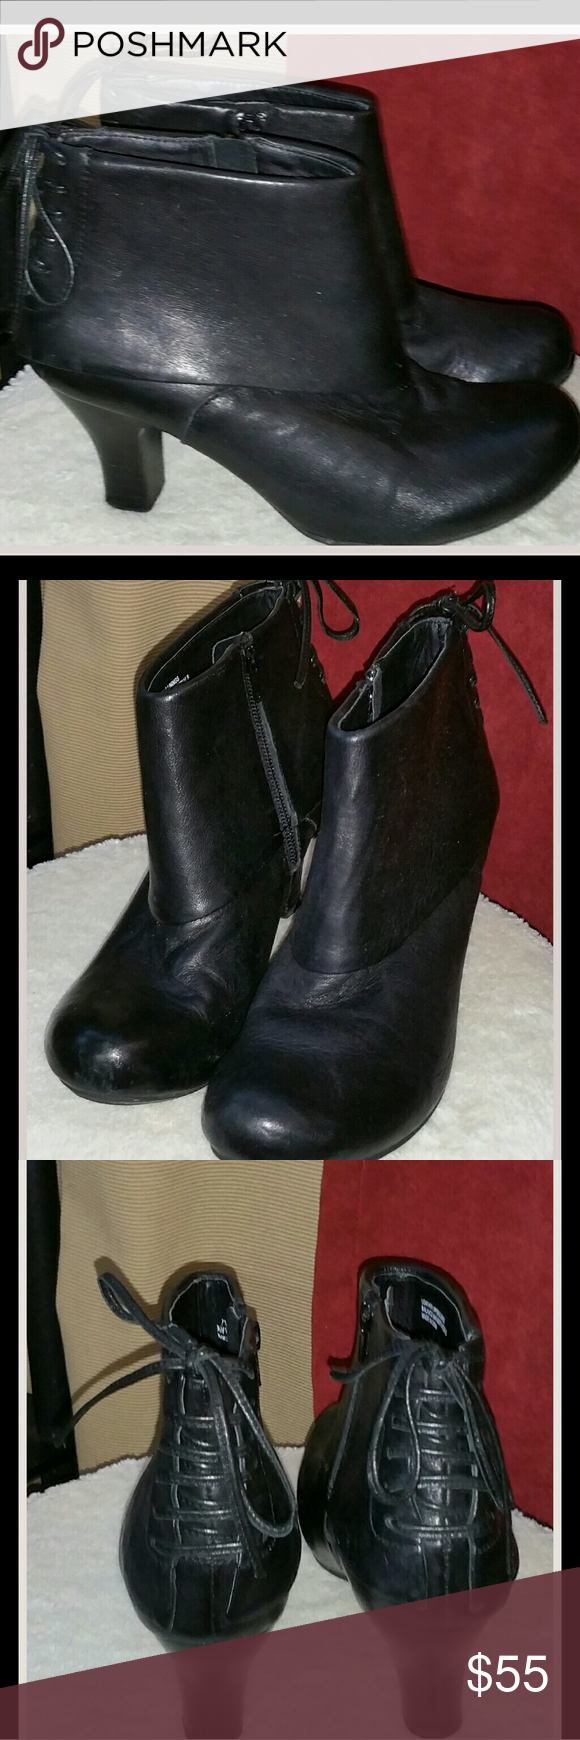 """Clarks Leather Boots Clarks Black Leather heeled Booties. Very stylish, rounded toe, 2"""" heel, with Leather ties in the back . Zipper on the inside of the boot. Clarks Shoes Heeled Boots"""